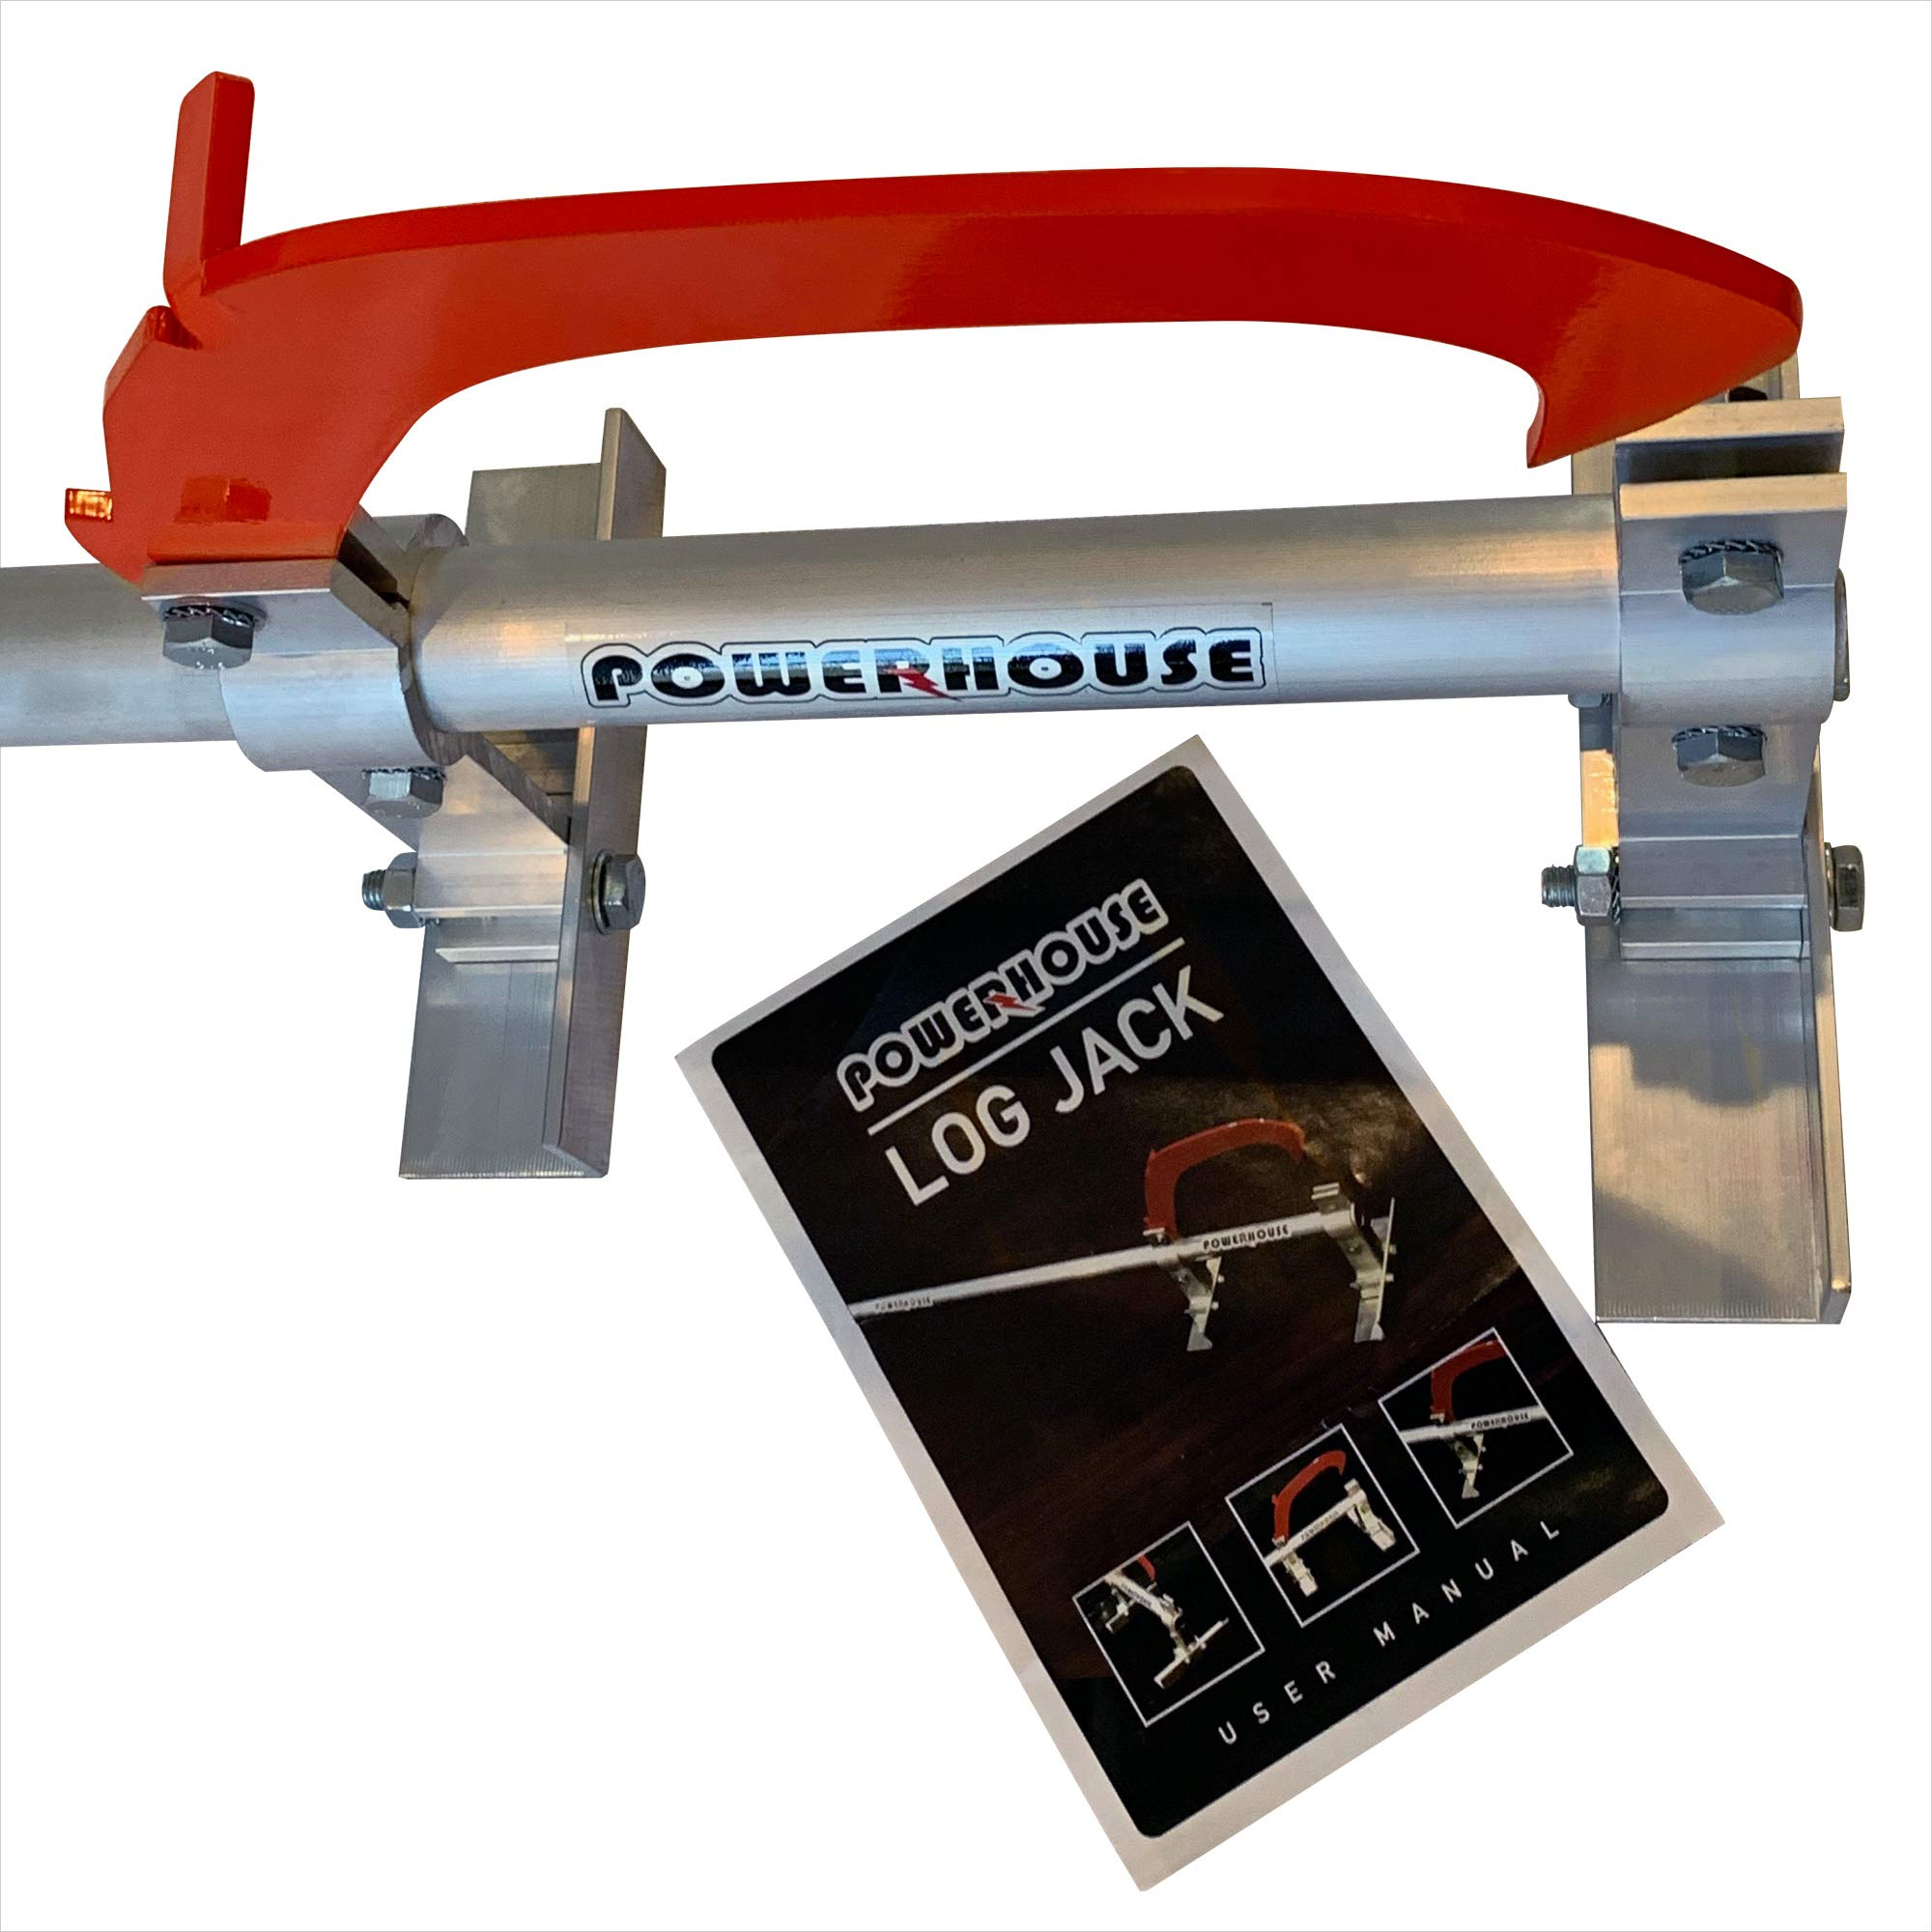 Powerhouse Log Splitters LJ-101 Log Jack, Silver by Powerhouse Log Splitters